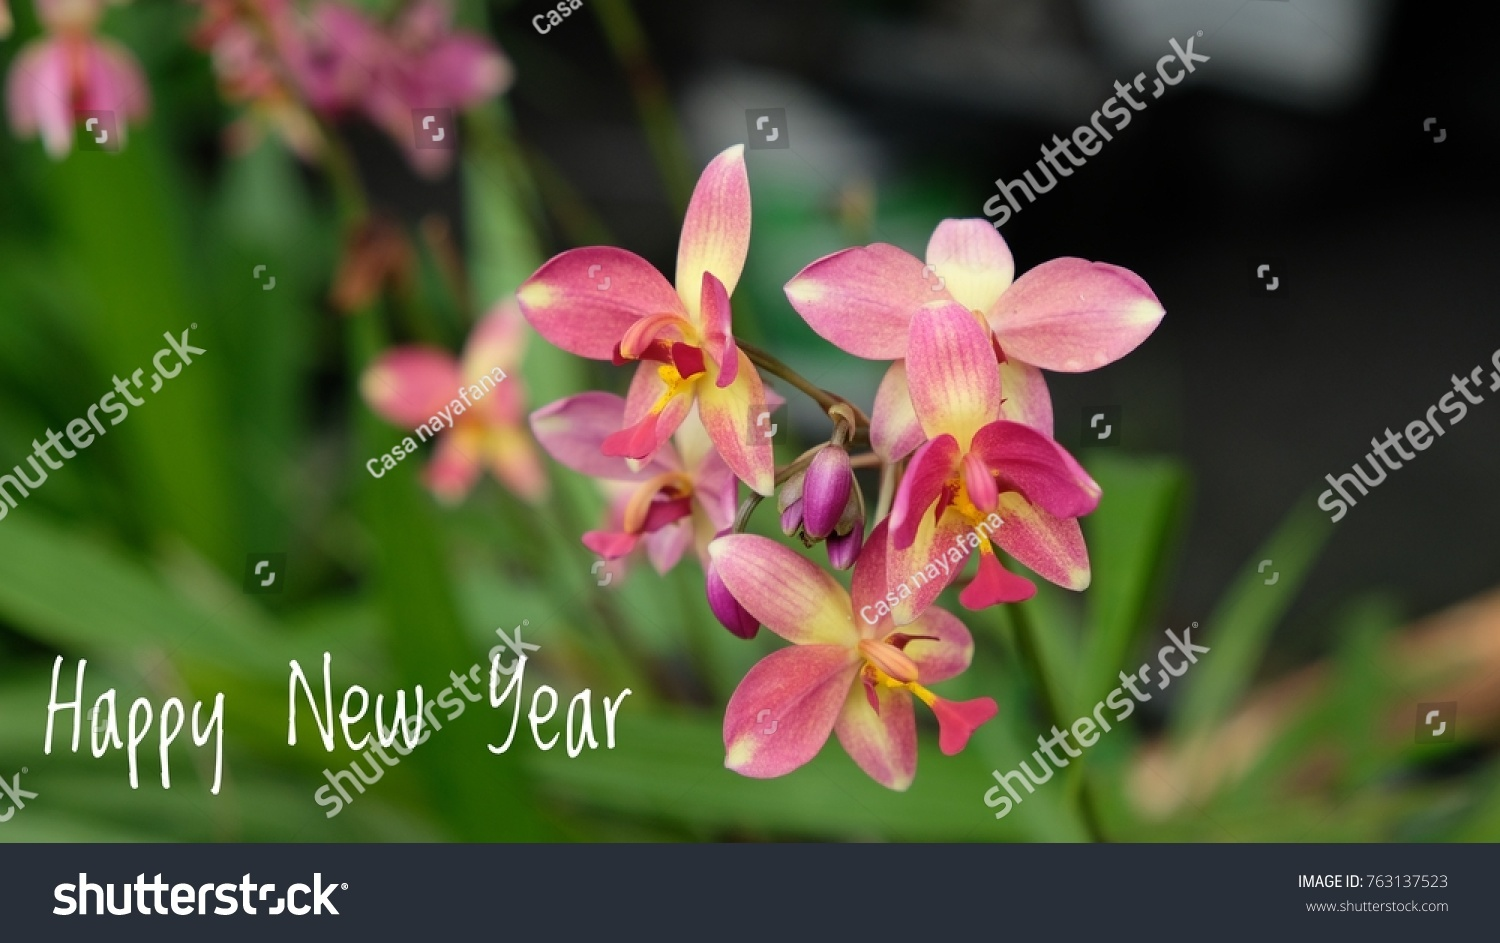 Beautiful Flowers Blurry Background New Year Stock Photo Royalty